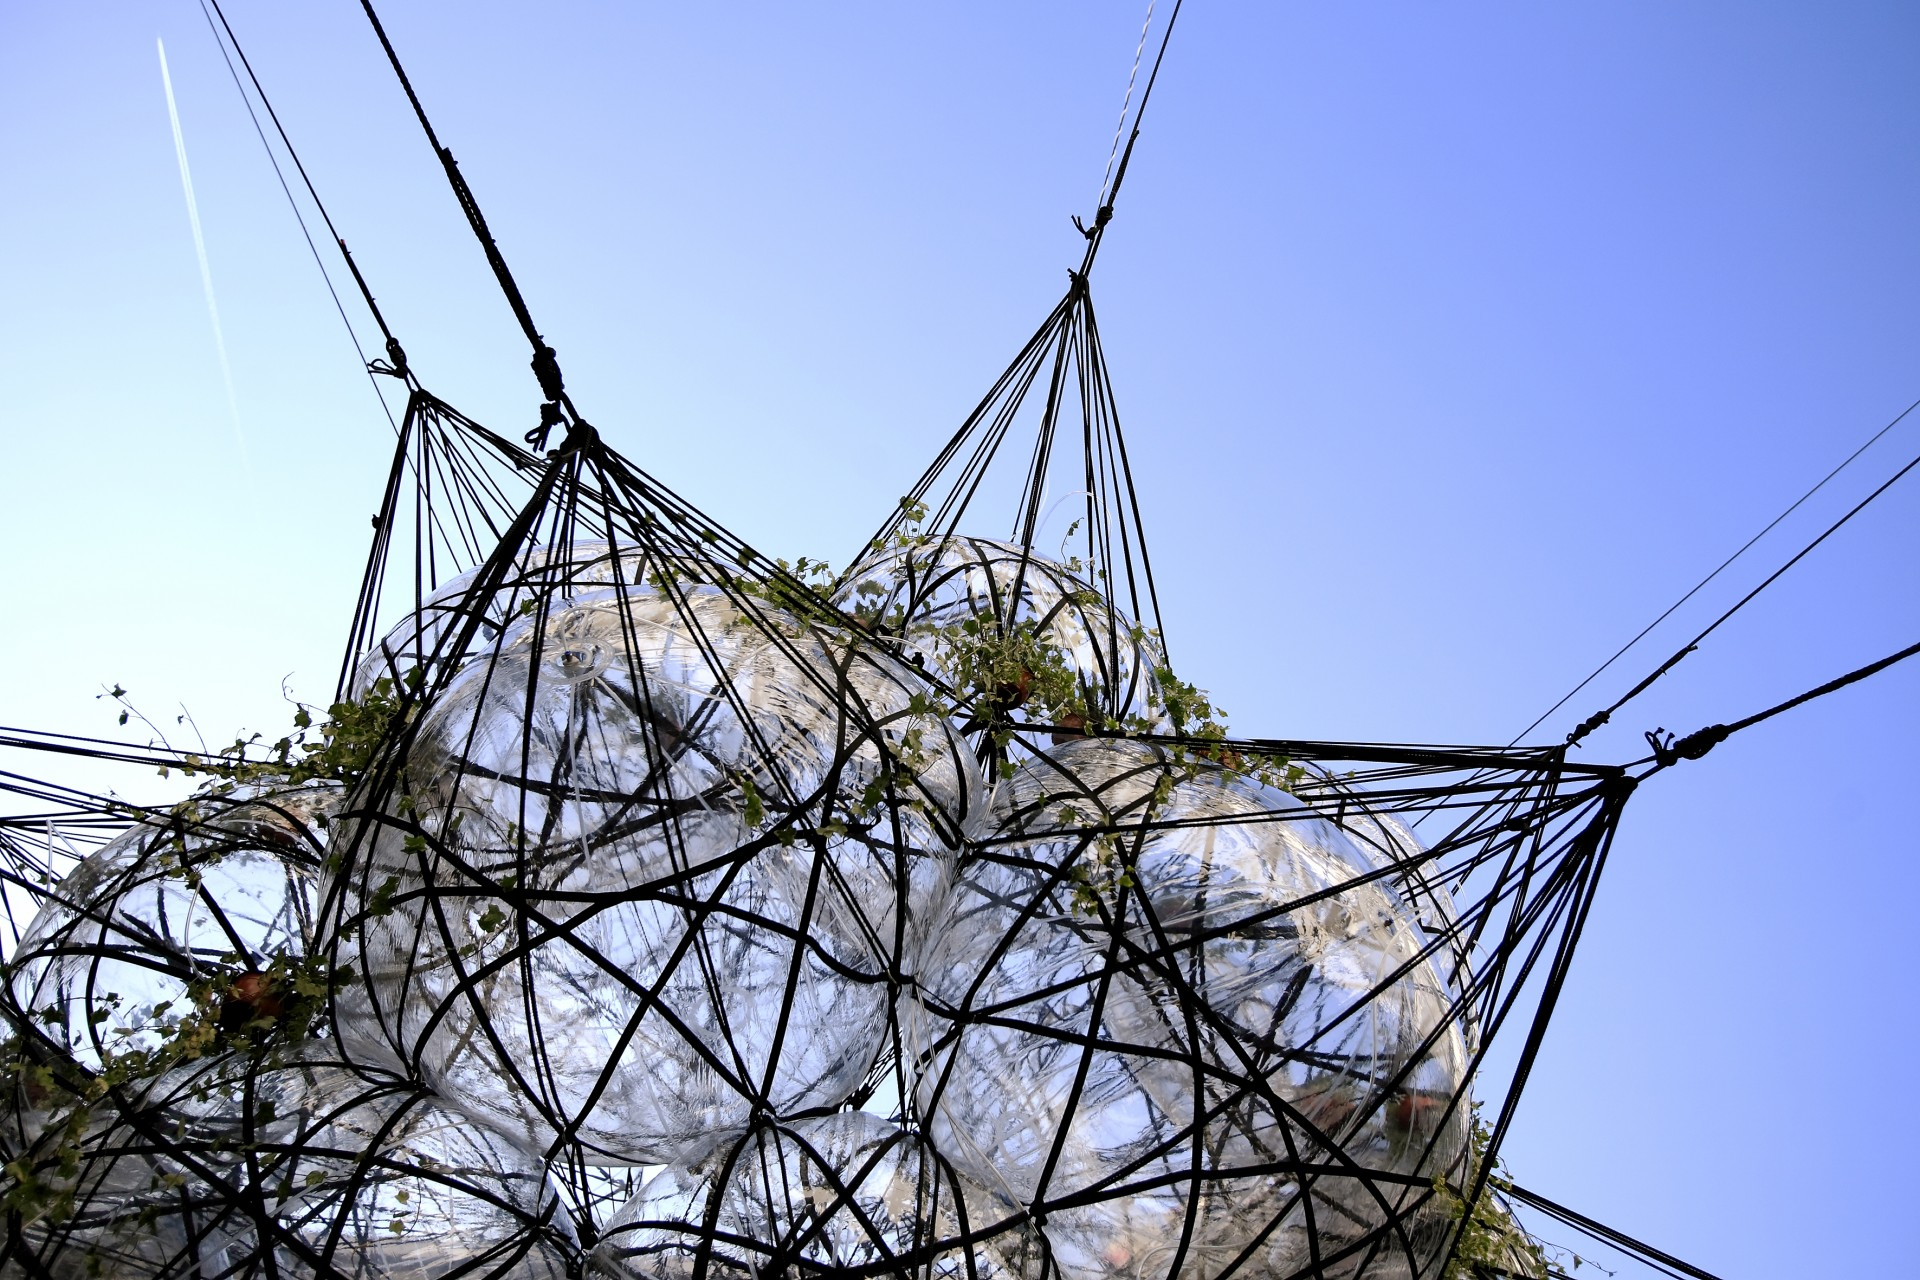 Tomás Saraceno, Biosphere MW32/Flying Garden/Air-Port-City, 2007. Installation view: Sharjah Biennial 8, United Arabs Emirates. Courtesy: Tomás Saraceno; Tanya Bonakdar Gallery, New York; Andersen's Contemporary, Copenhagen; Pinksummer Contemporary Art, Genoa. © Photography by Marco Rokma